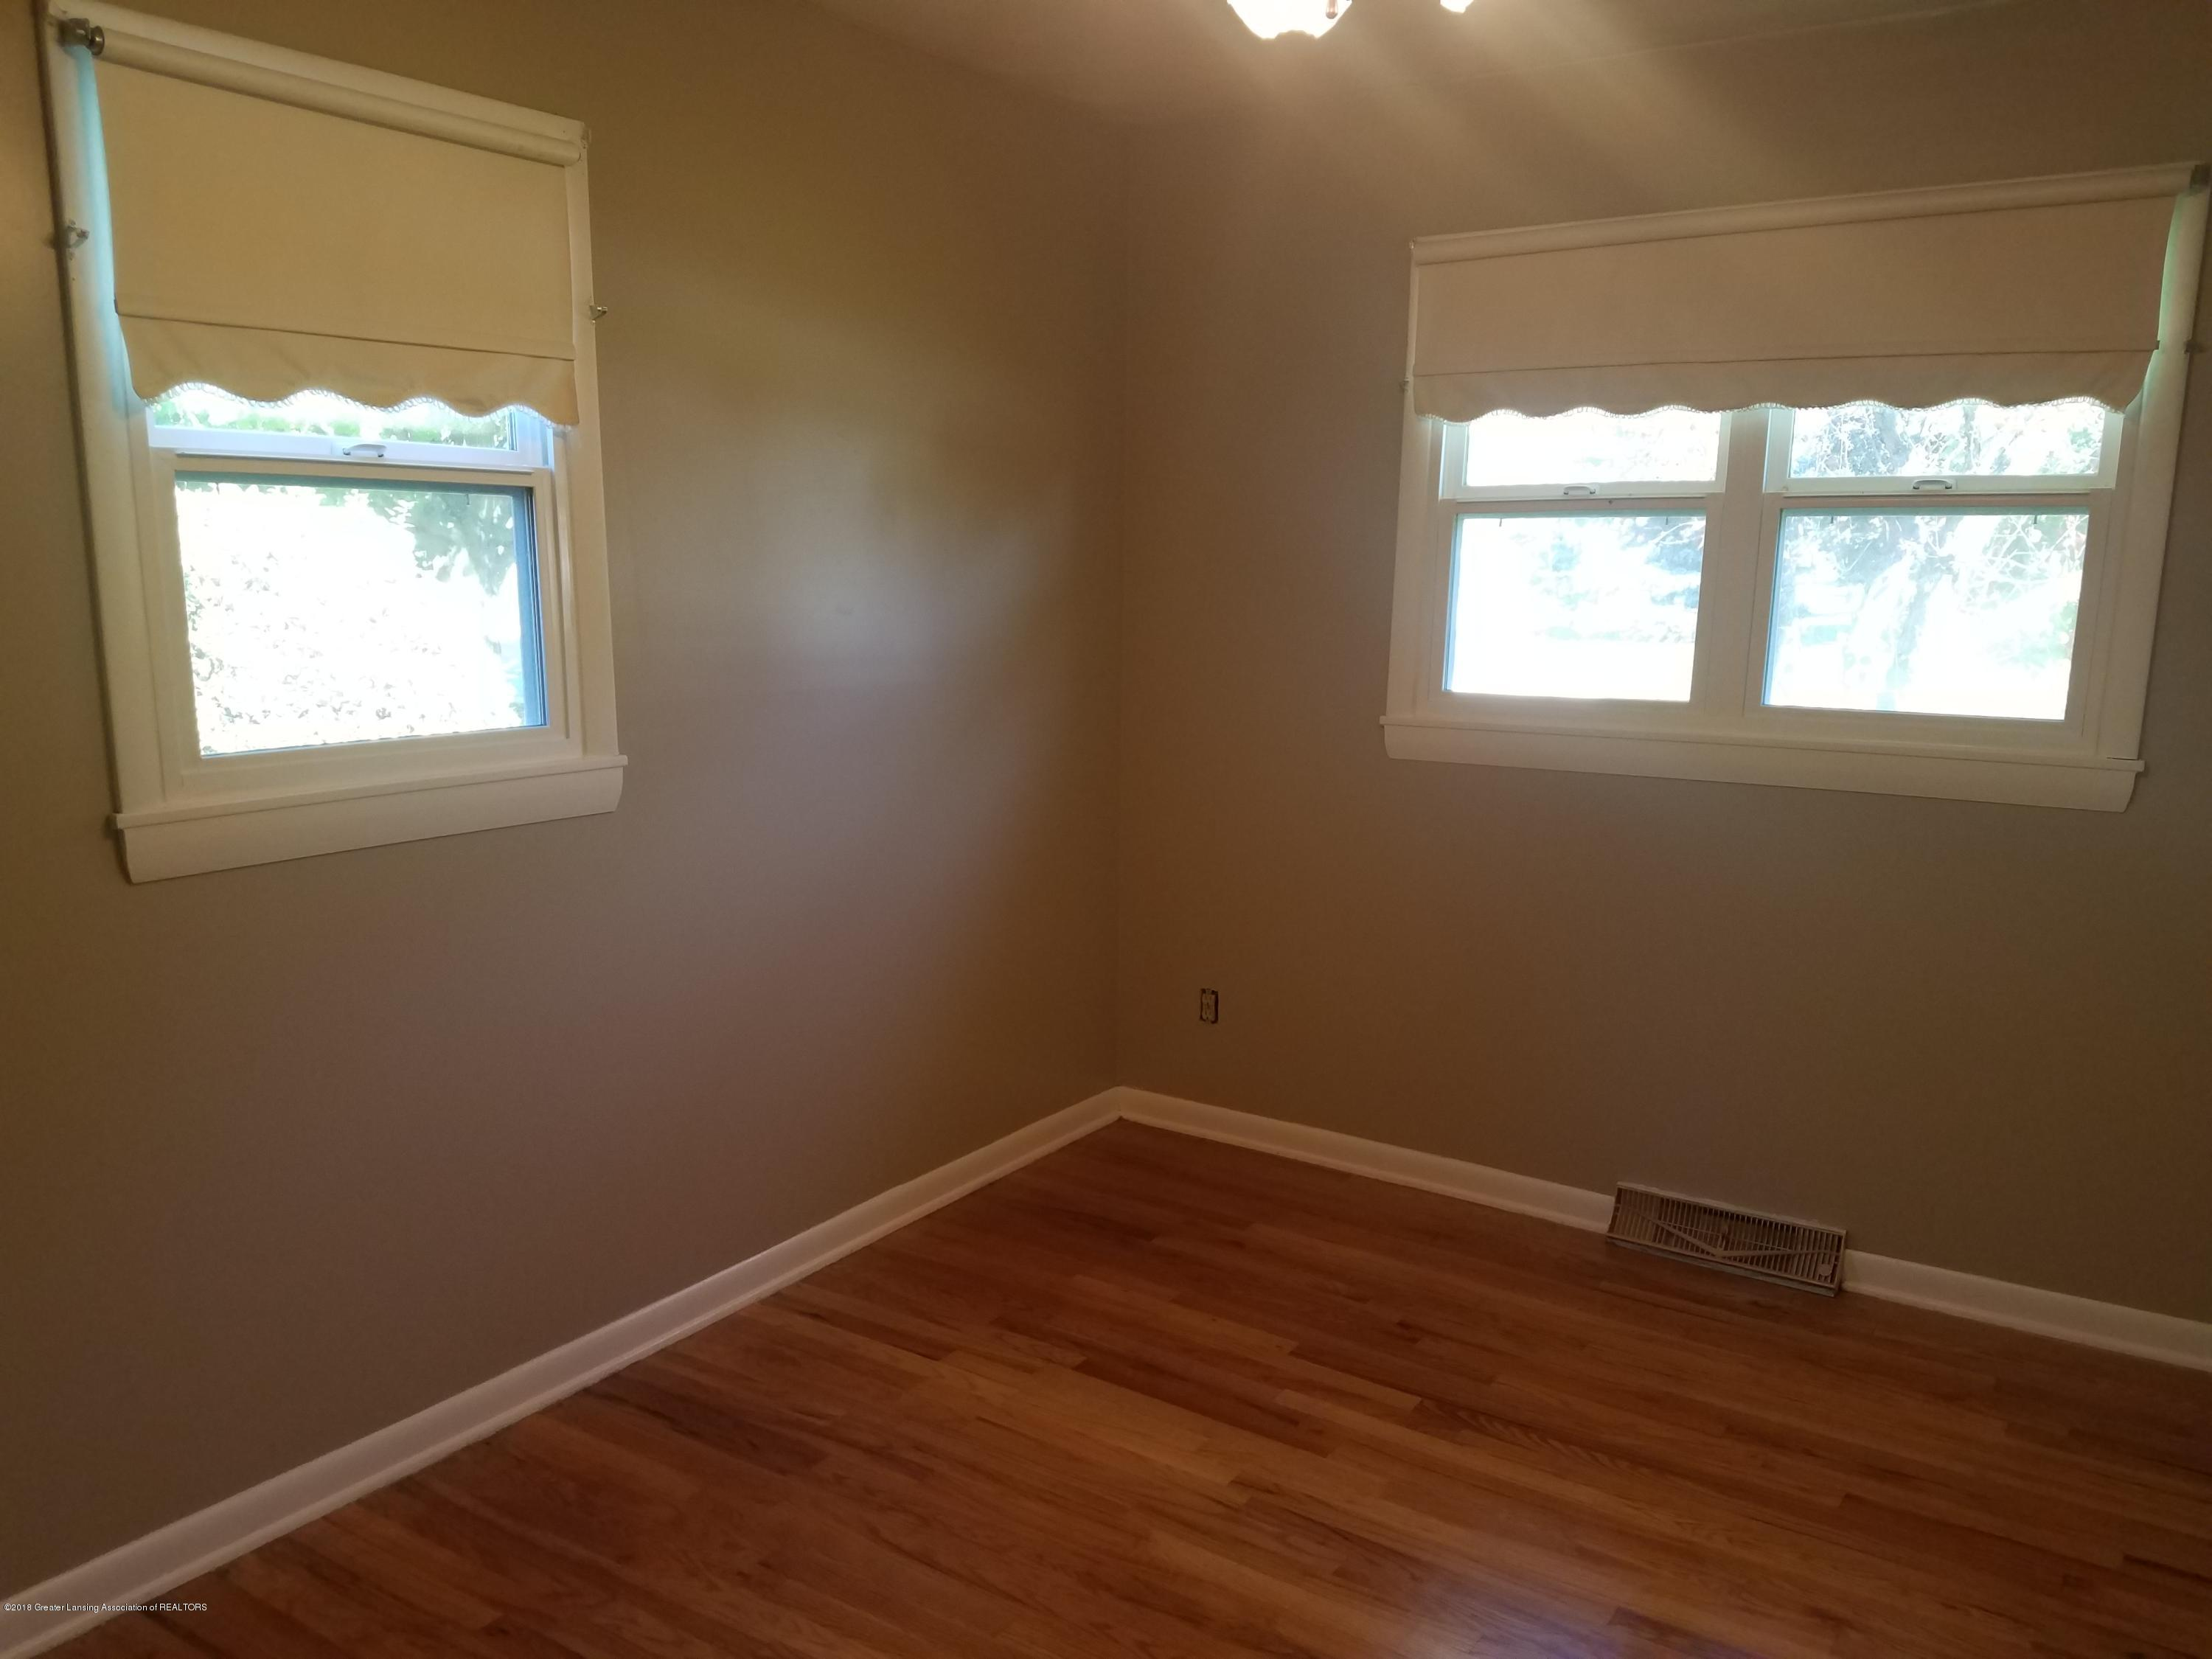 604 S Baker St - Bedroom - 15